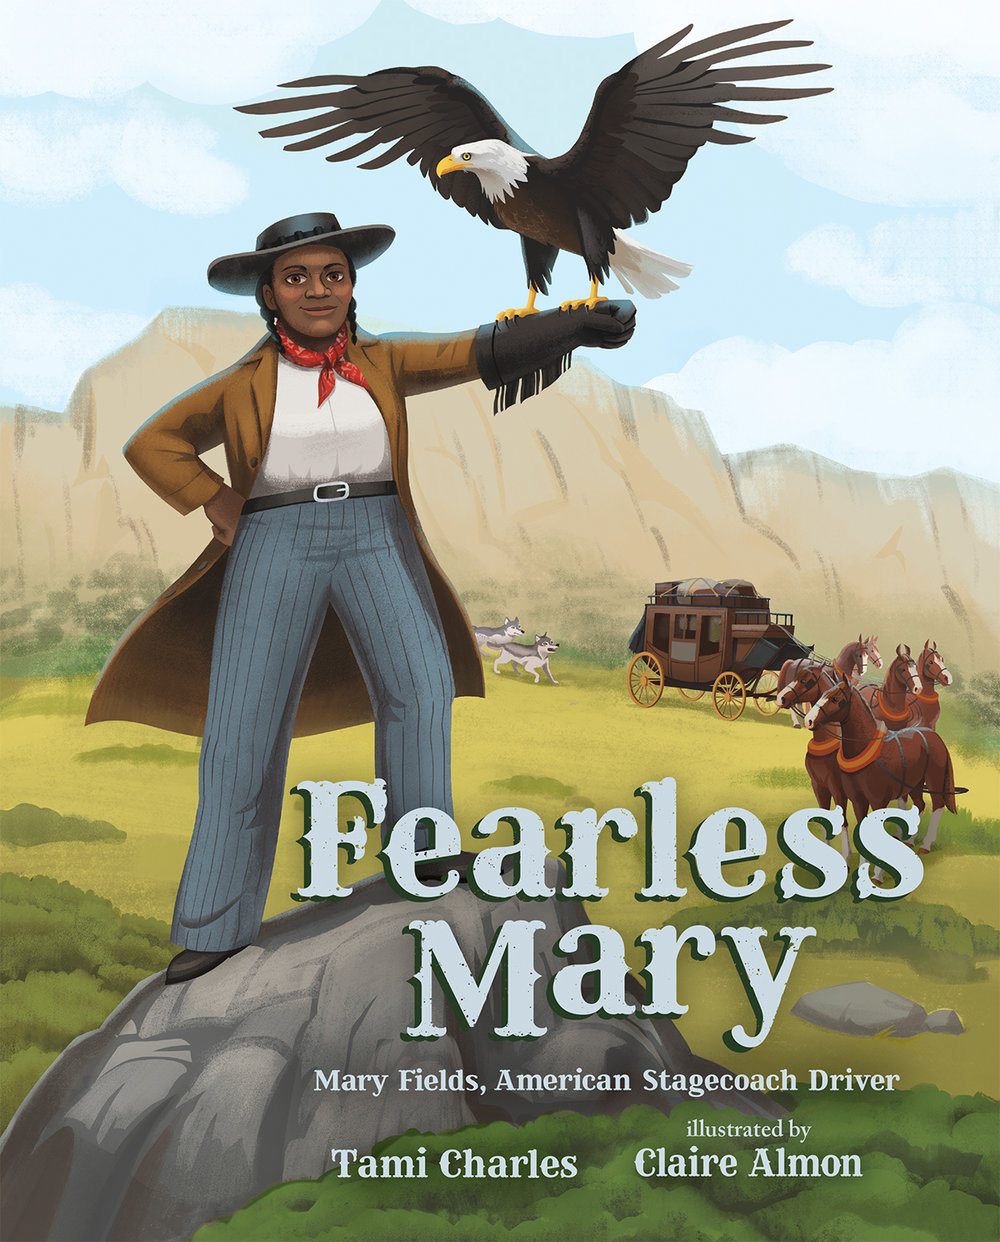 Fearless Mary: Mary Fields, American Stagecoach Driver , by Tami Charles